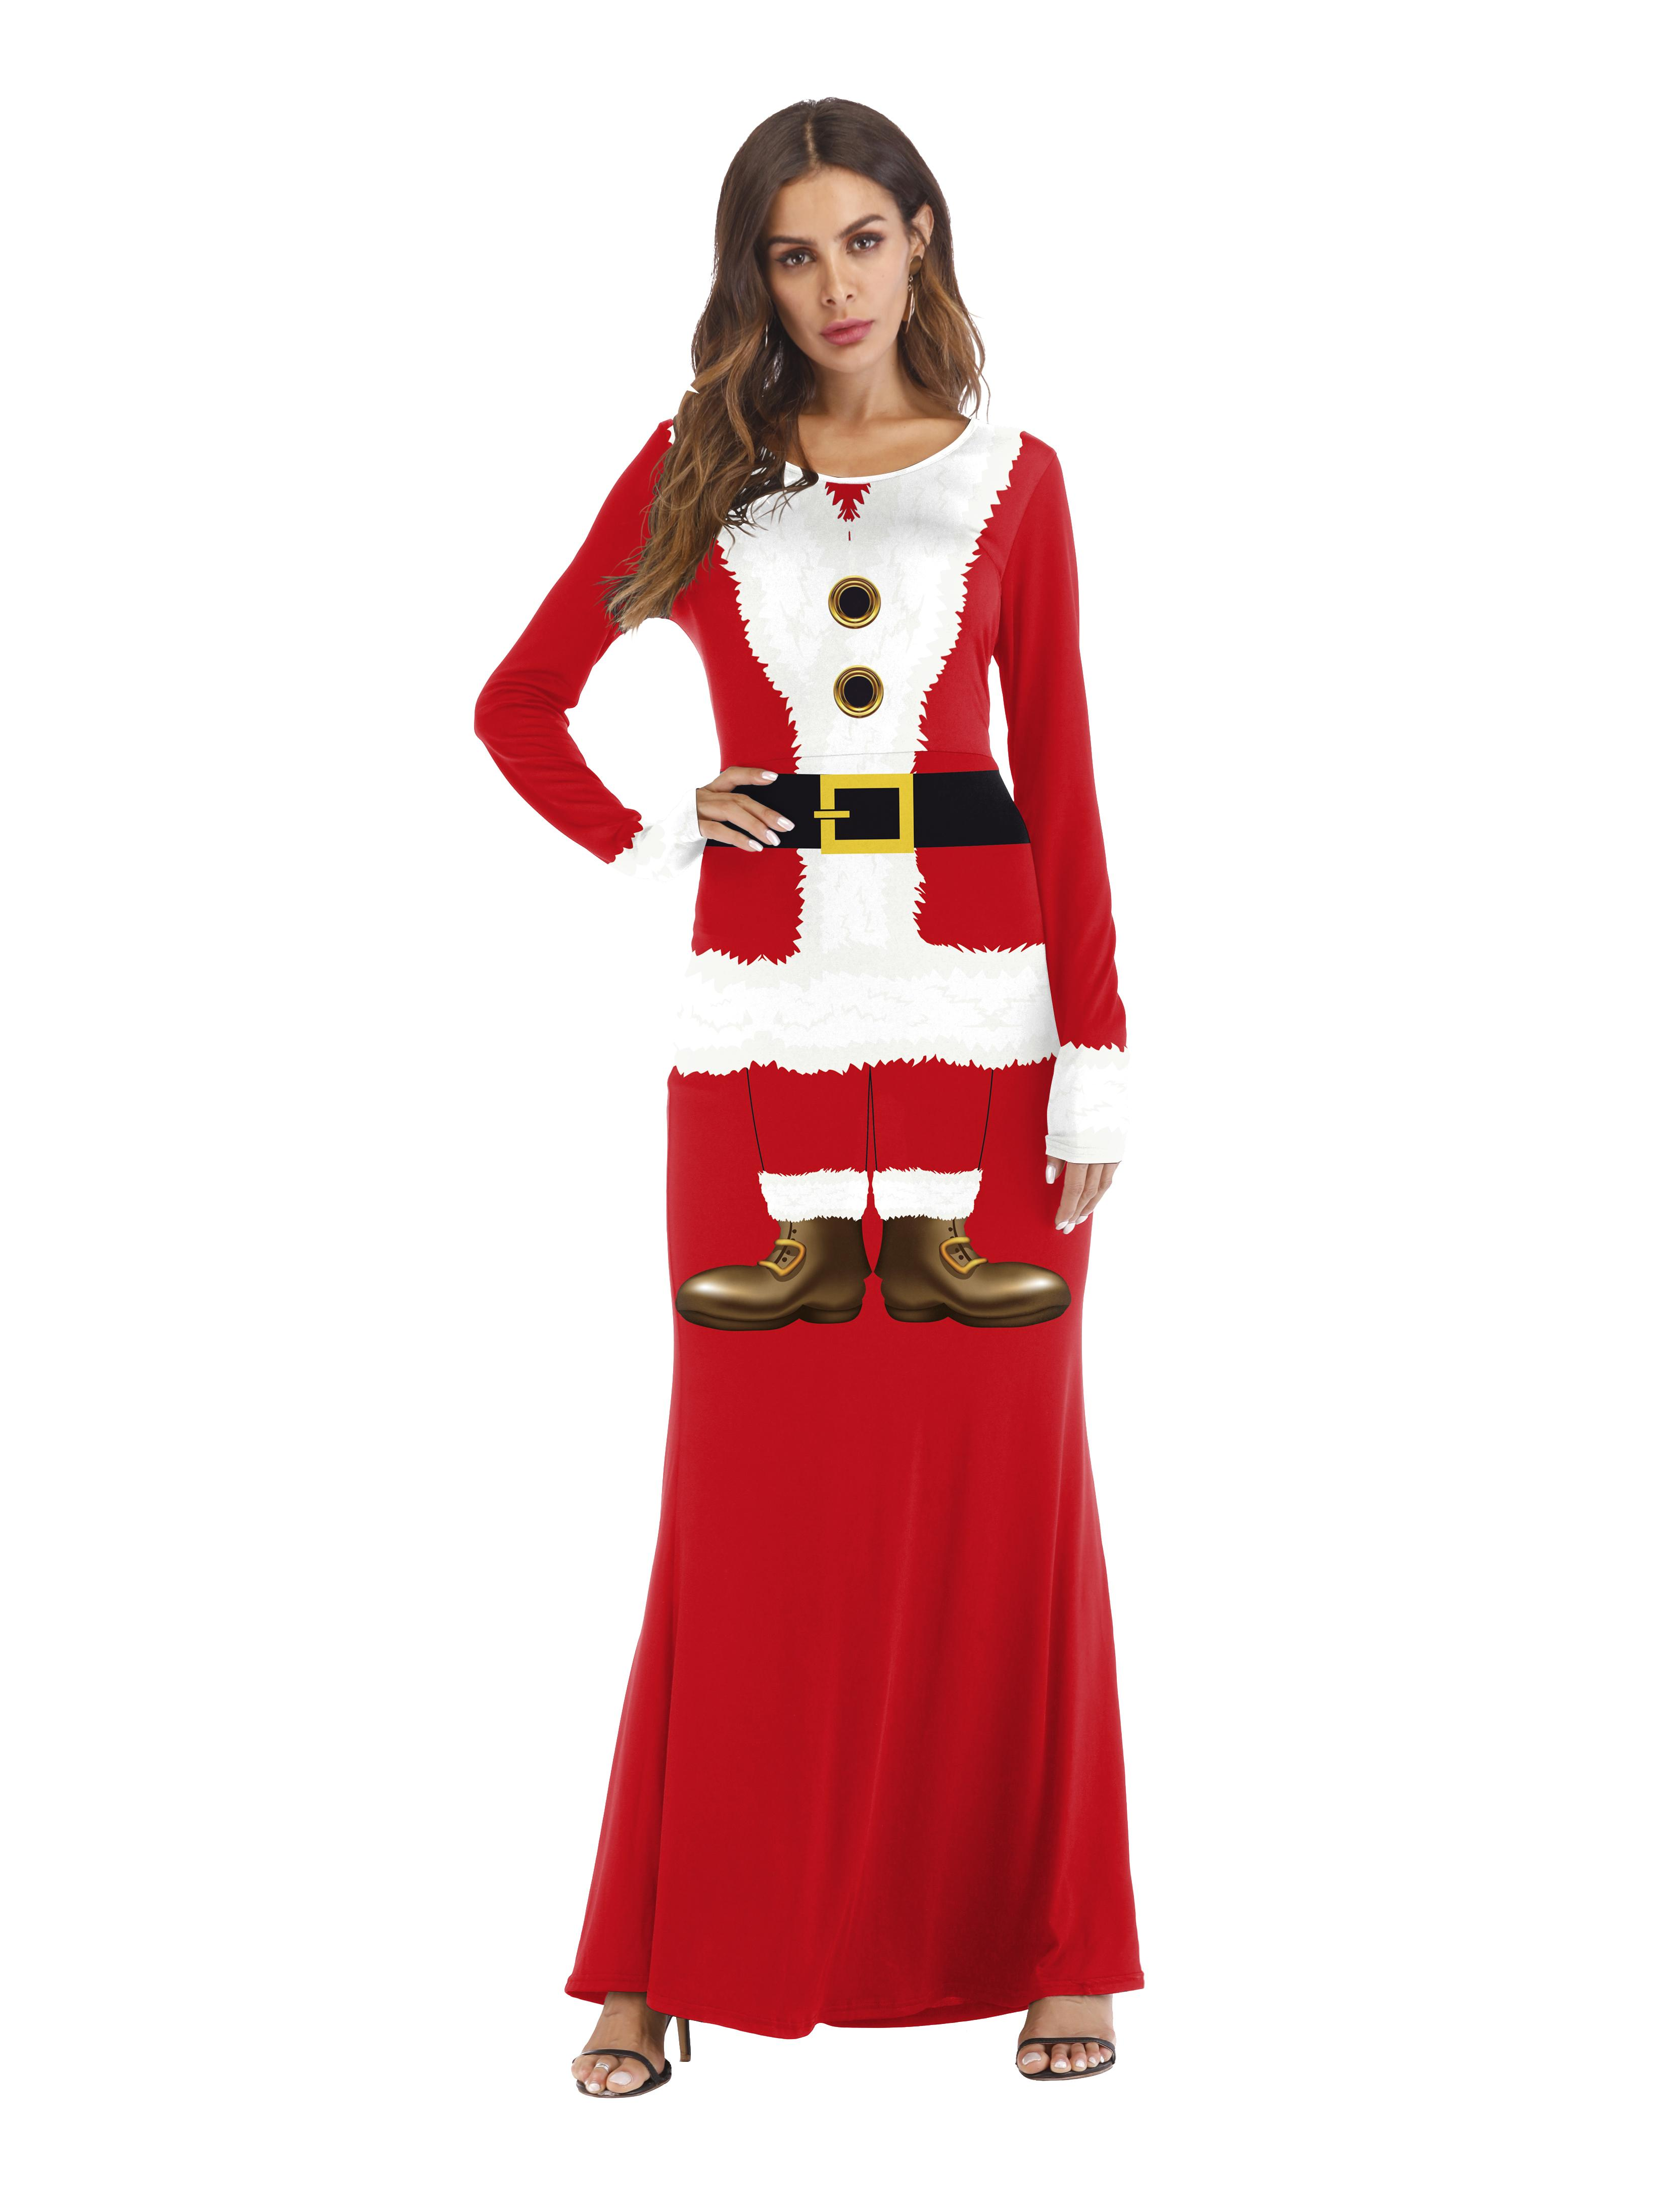 fd8a97b6982 2019 Vogue Of New Fund Of 2018 Christmas Cos Adult Leisure Garment Printing  Christmas Party Party Dress From Clothes zhang